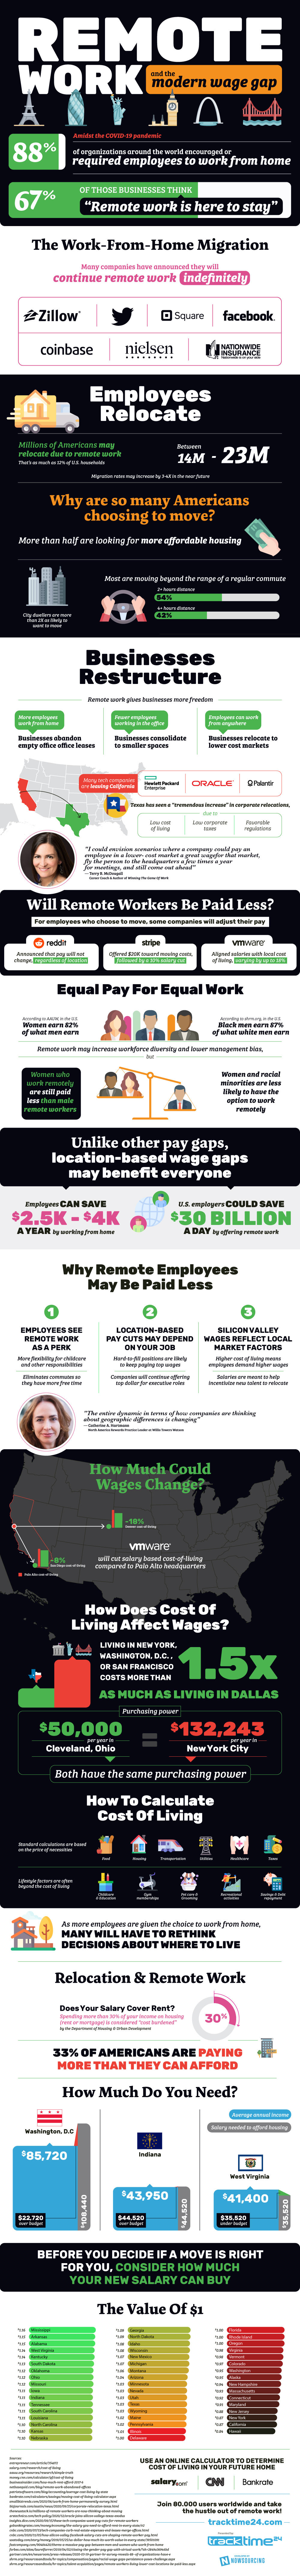 remote work and the pay gap (infographic)